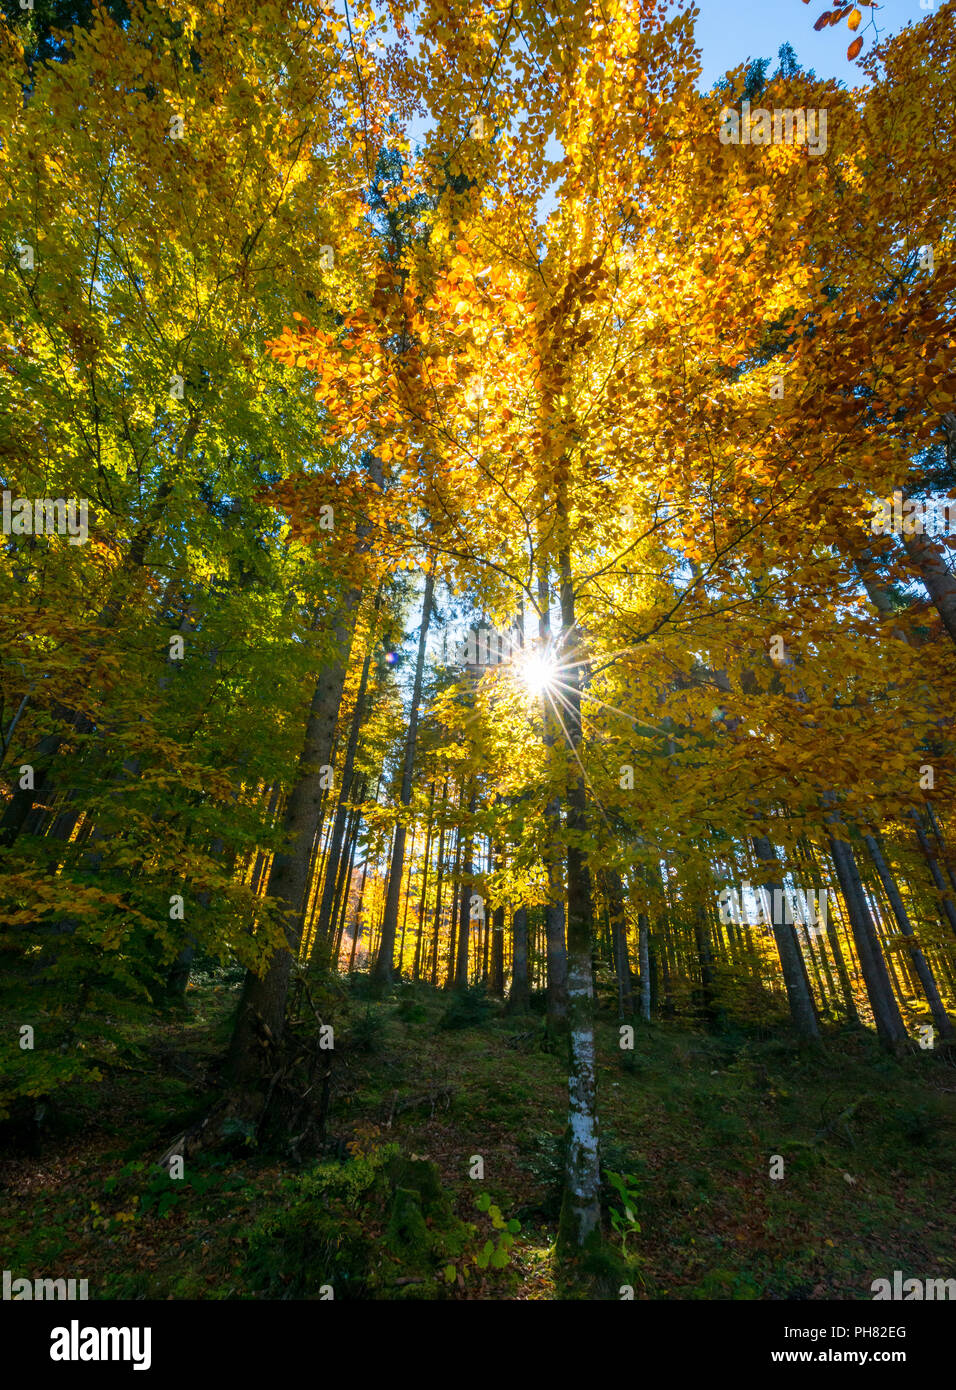 Sun shines through colorfully autumn leaves, forest in autumn, Walchensee, Upper Bavaria, Bavaria, Germany - Stock Image